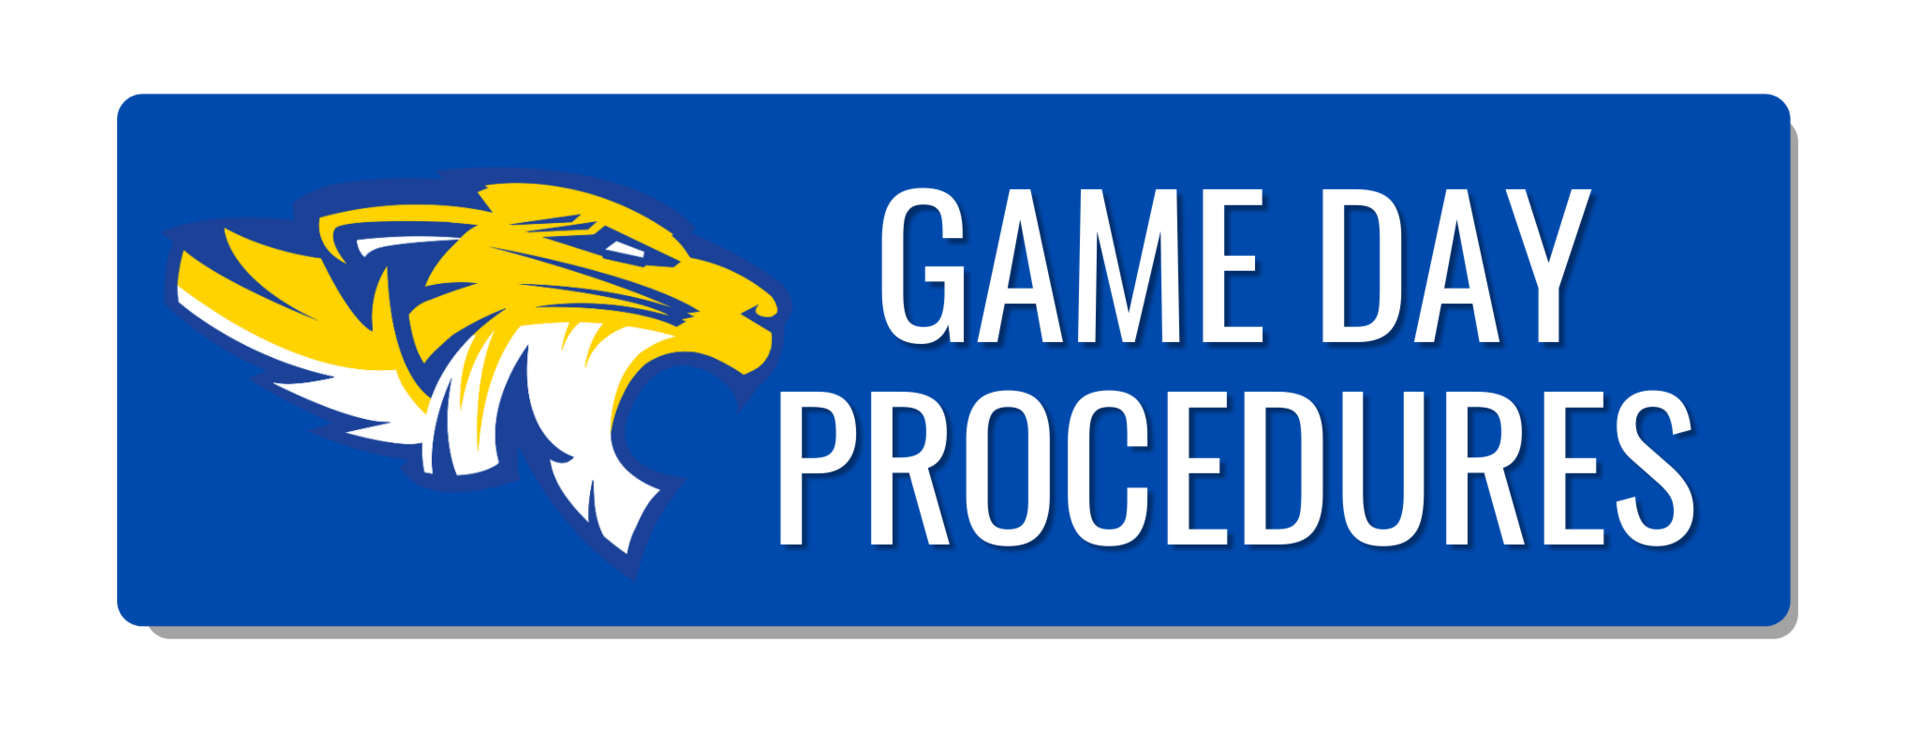 click for game day procedures